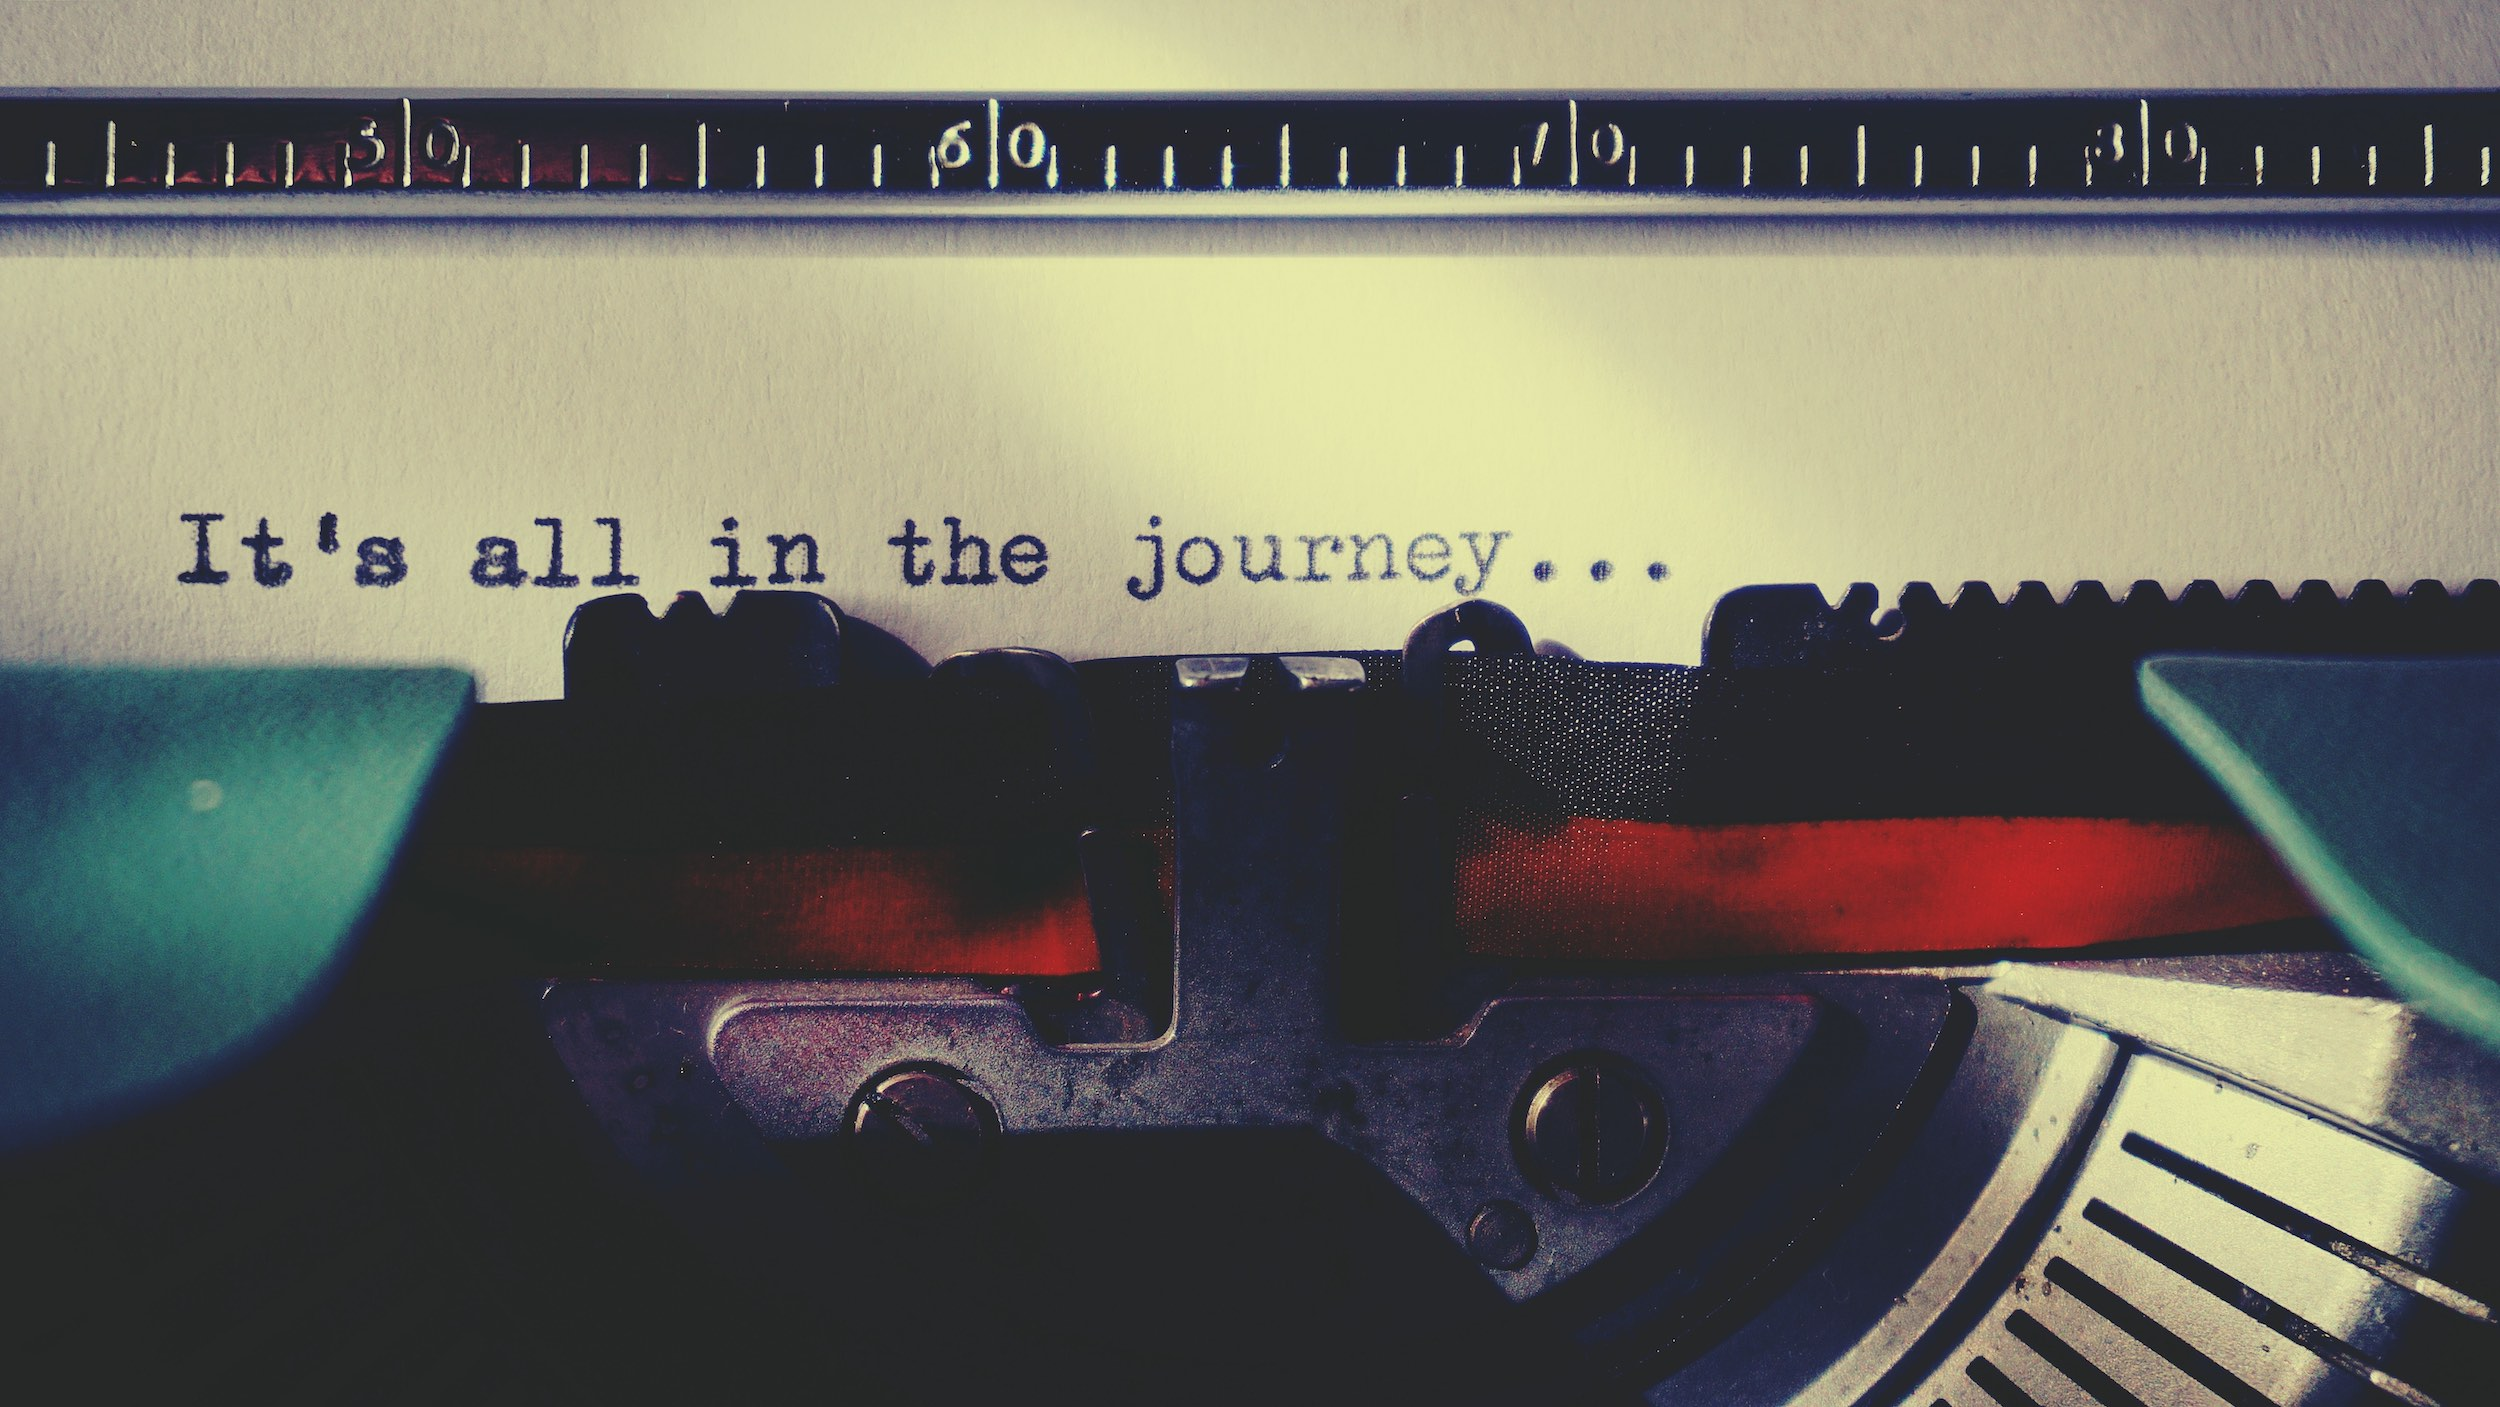 Firefly Scout Typewriter with journey quote.jpg